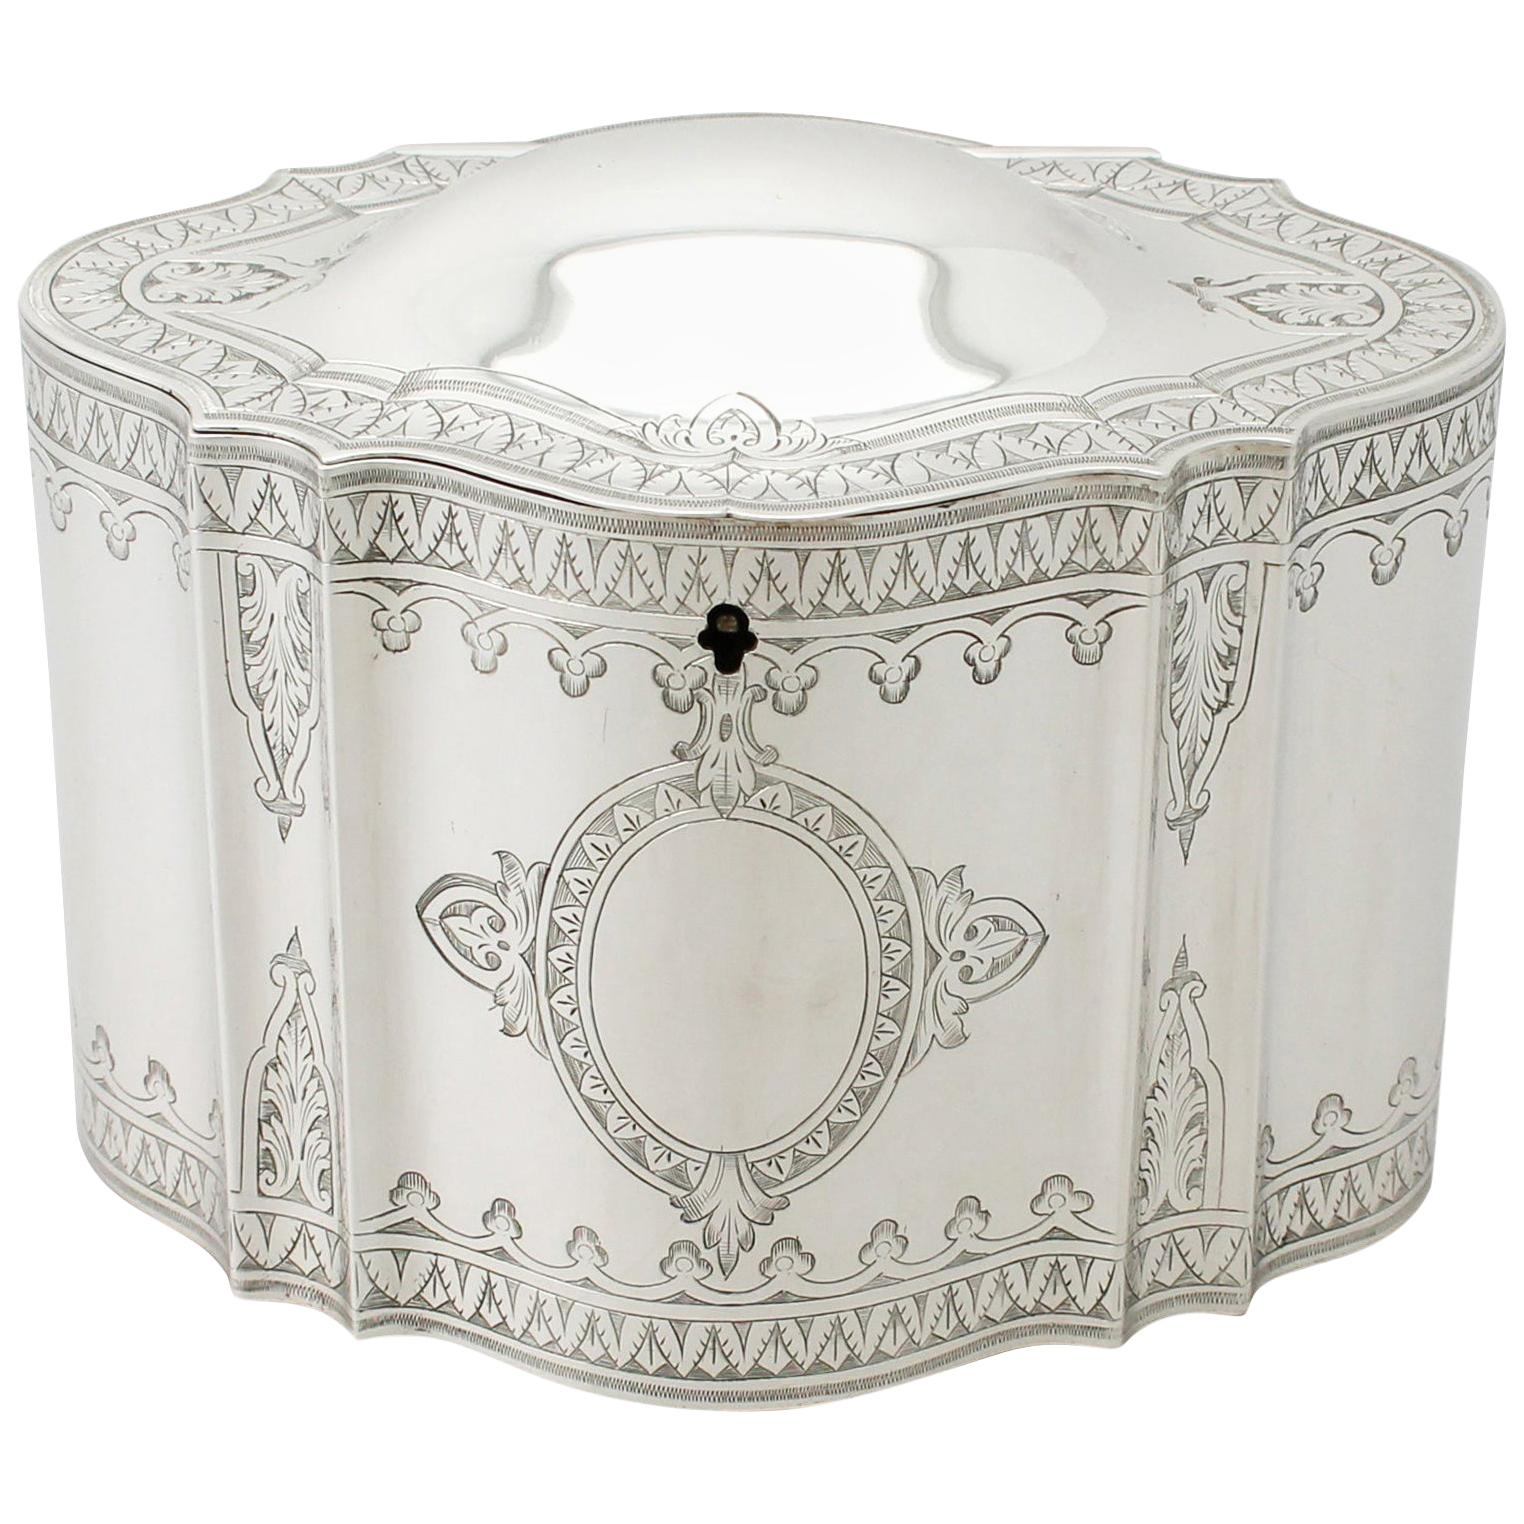 1874 Antique Victorian Sterling Silver Locking Tea Caddy